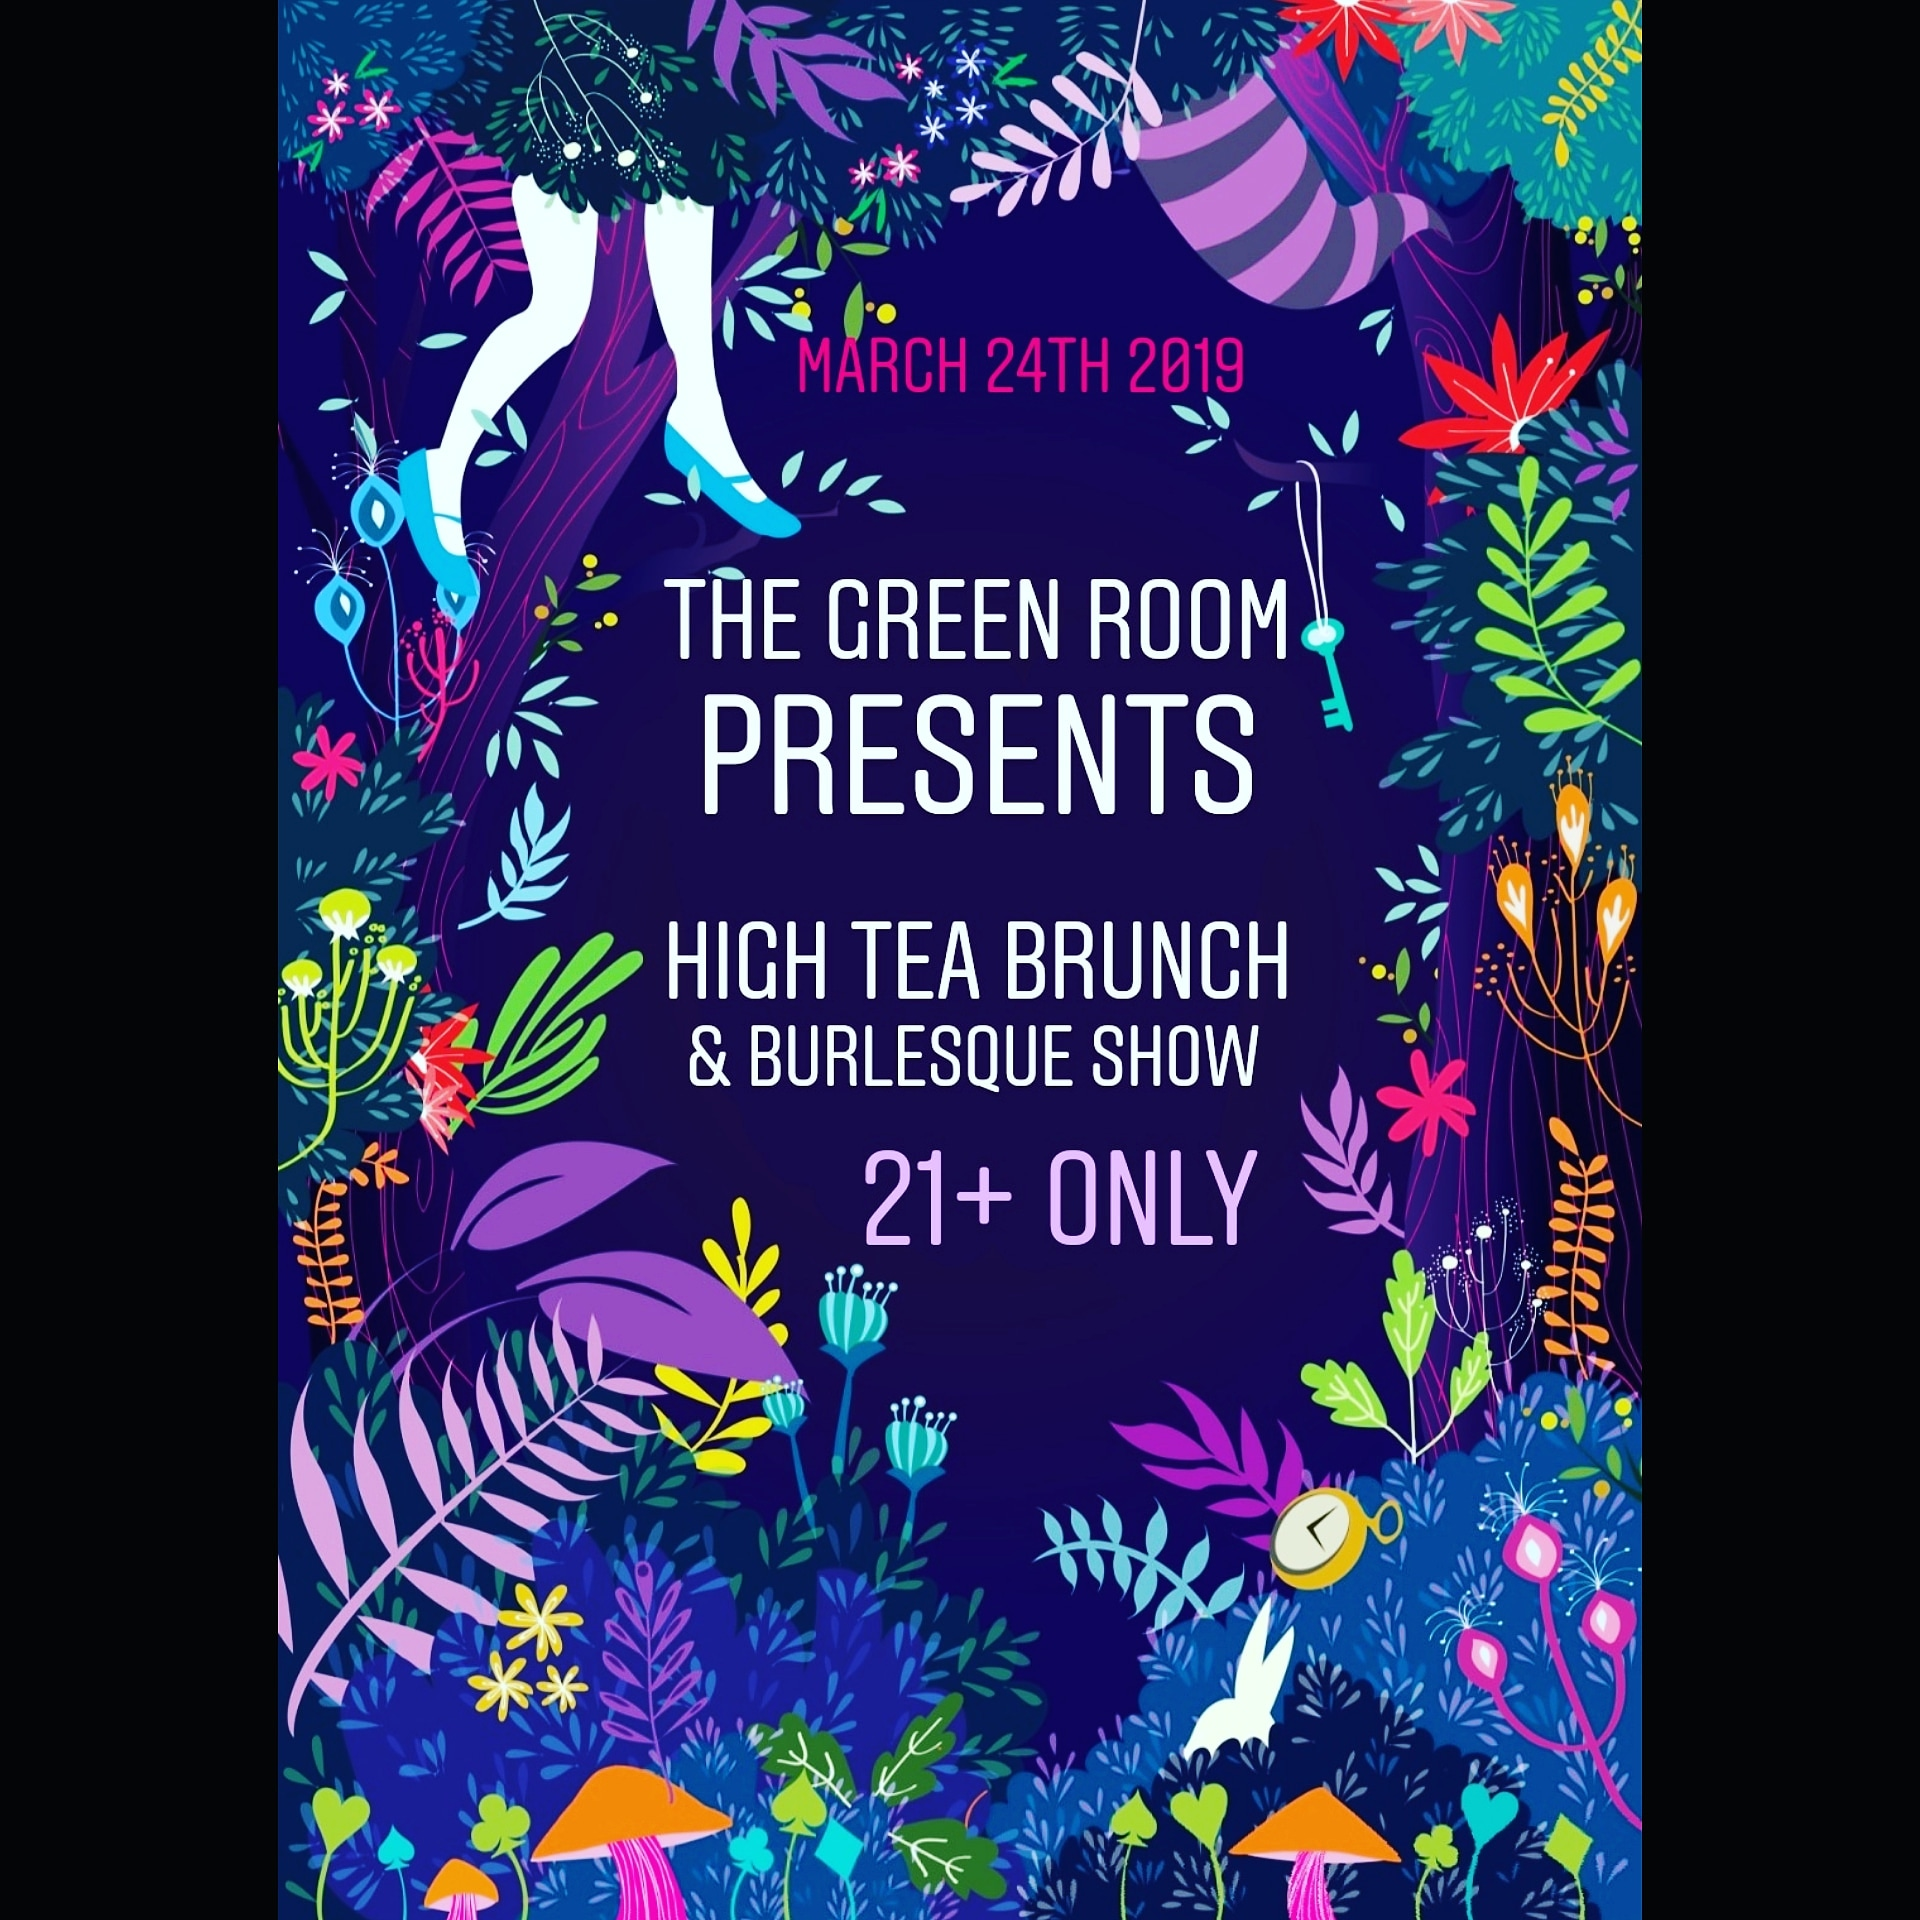 High Tea Brunch & Burlesque Show